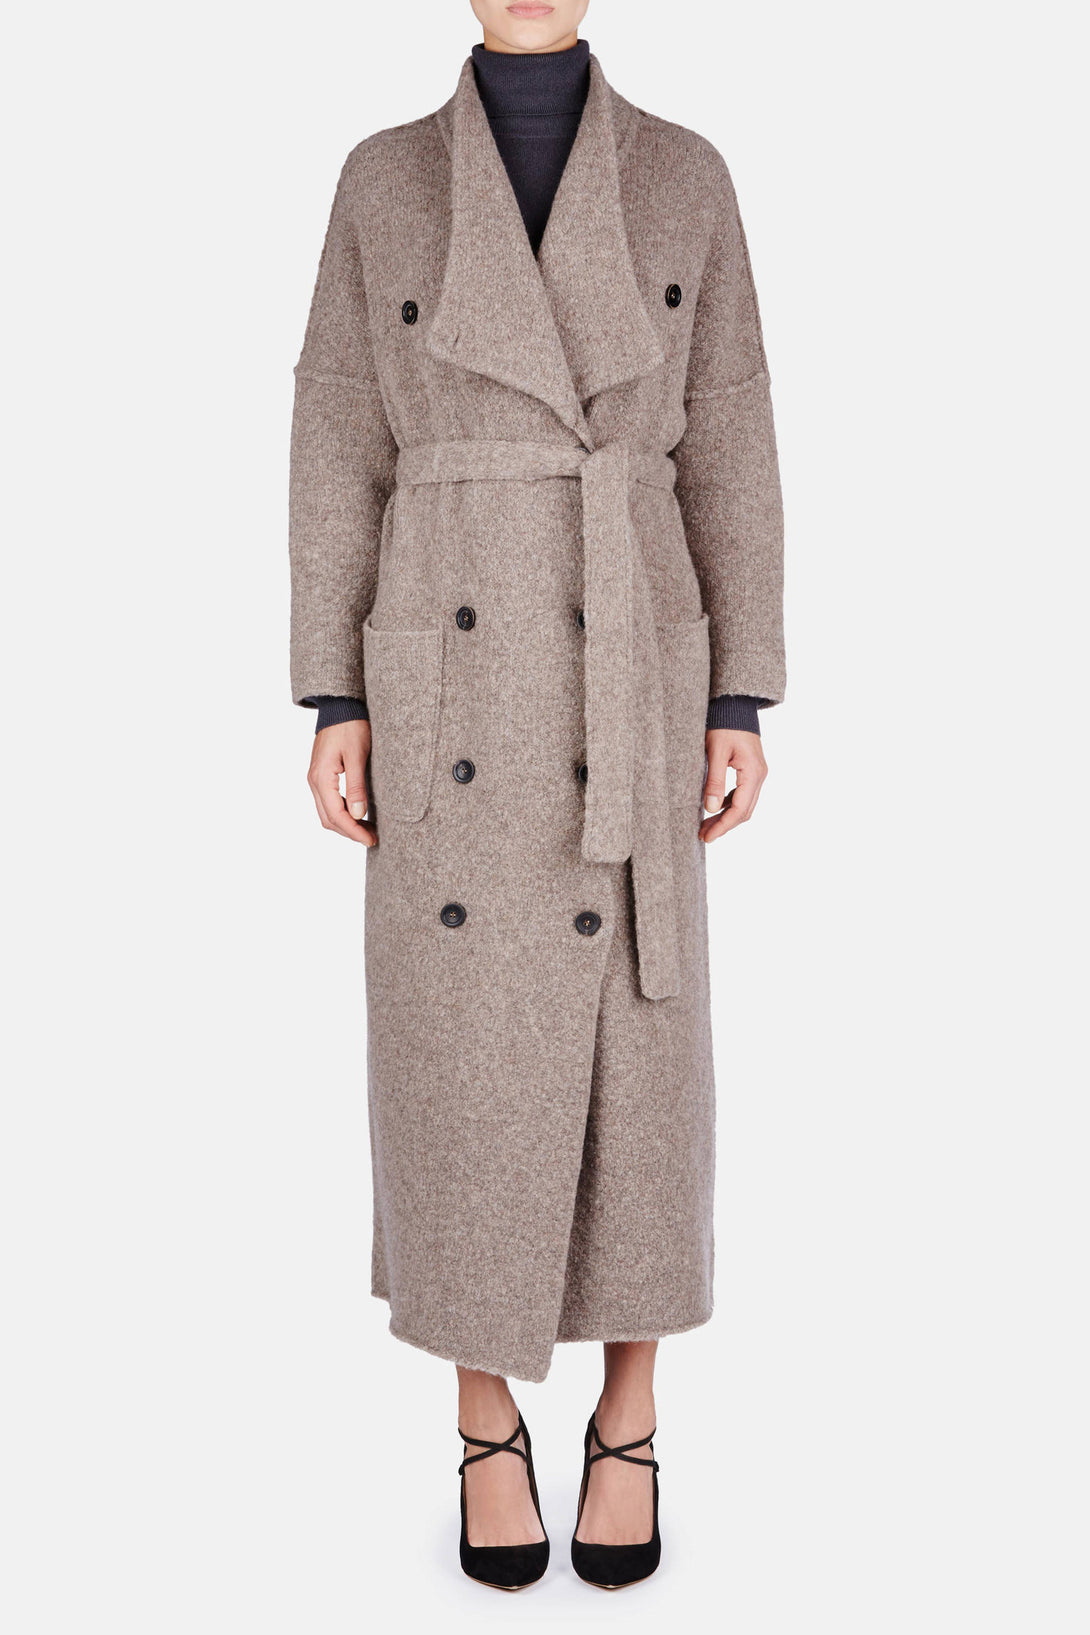 Harrison Knit Trench Coat - Oak